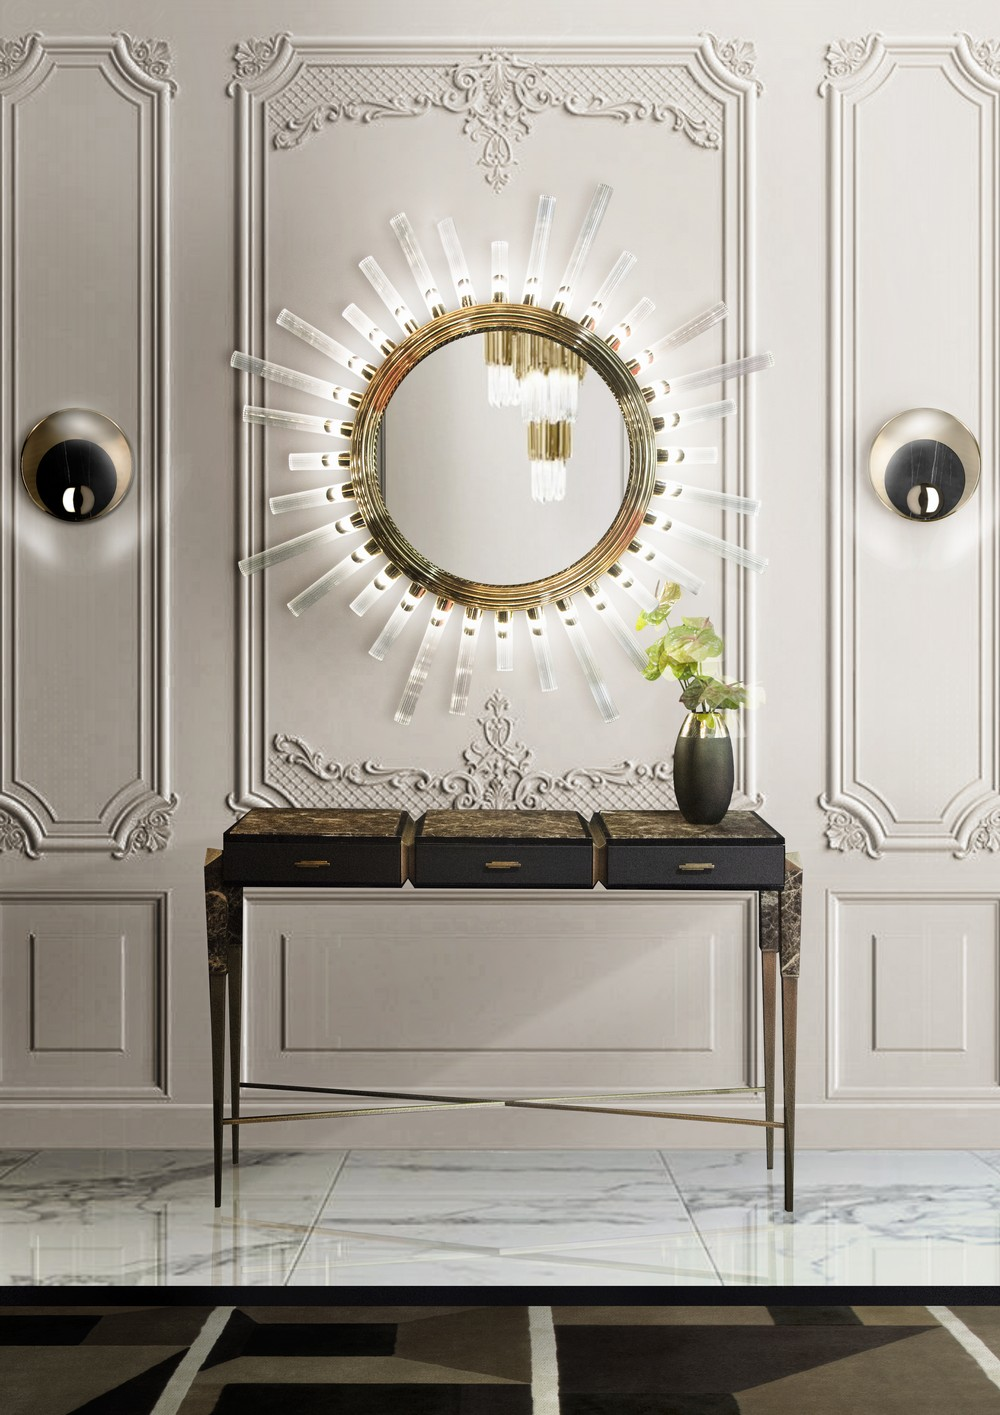 25 Luxury Sideboards Consoles to Consider for a Bold Design Concept 23 luxury sideboards 25 Luxury Sideboards & Consoles to Consider for a Bold Design Concept 25 Luxury Sideboards Consoles to Consider for a Bold Design Concept 23